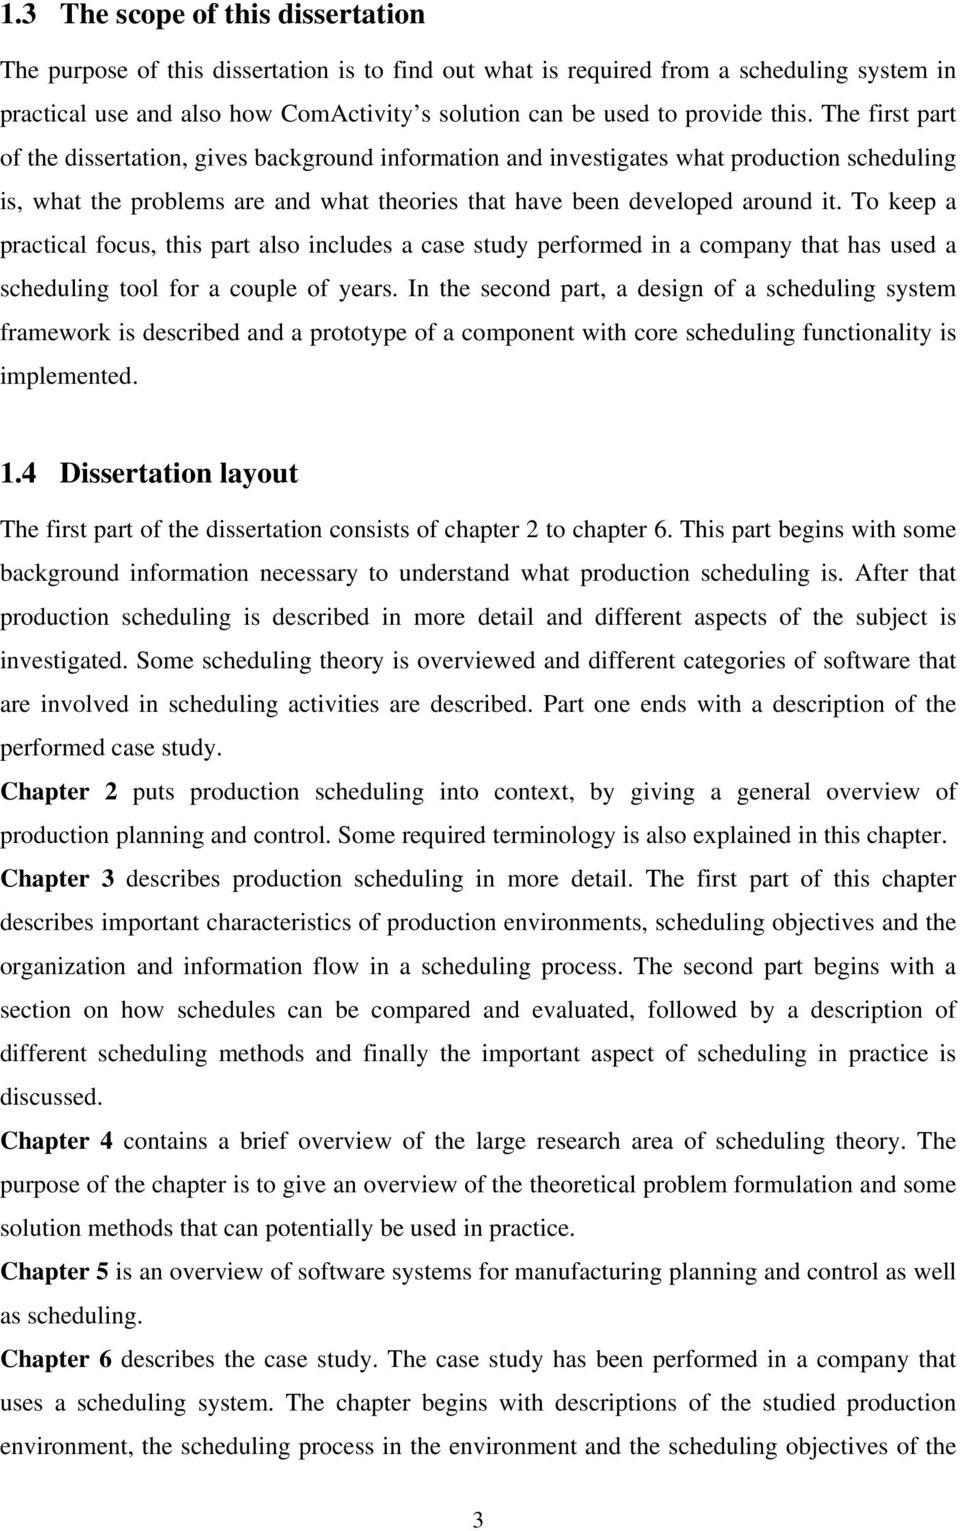 The first part of the dissertation, gives background information and investigates what production scheduling is, what the problems are and what theories that have been developed around it.